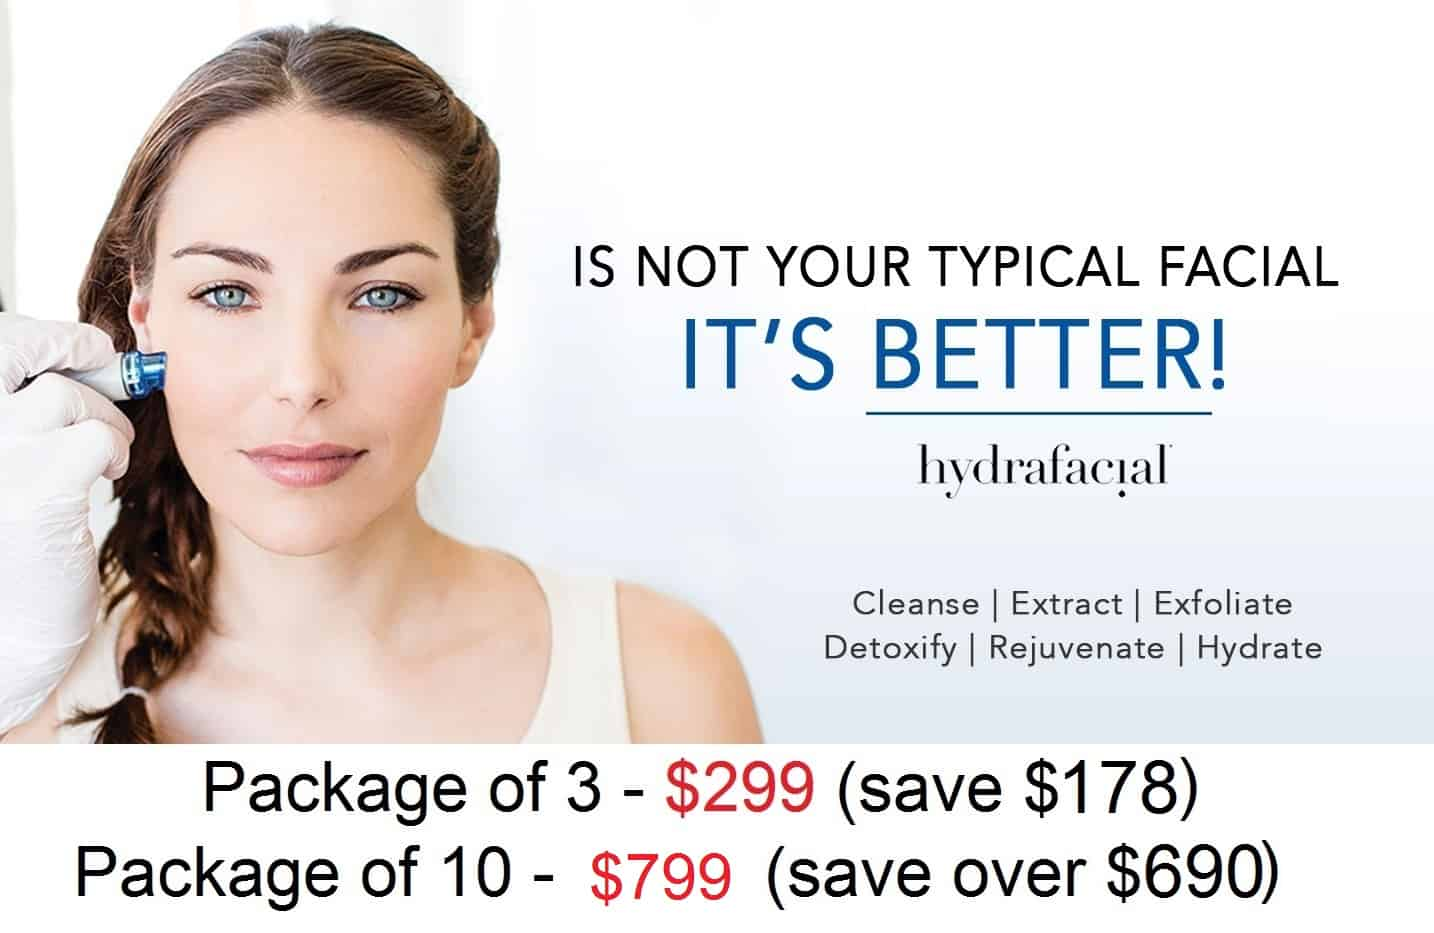 Is not  your typical facial, it's better! Hydrafacial. Cleanse, extract, exfoliate, detoxify, rejuvenate, hydrate. Package of 3 $299 (save $178) Package of 10 $799 (Save over $690.